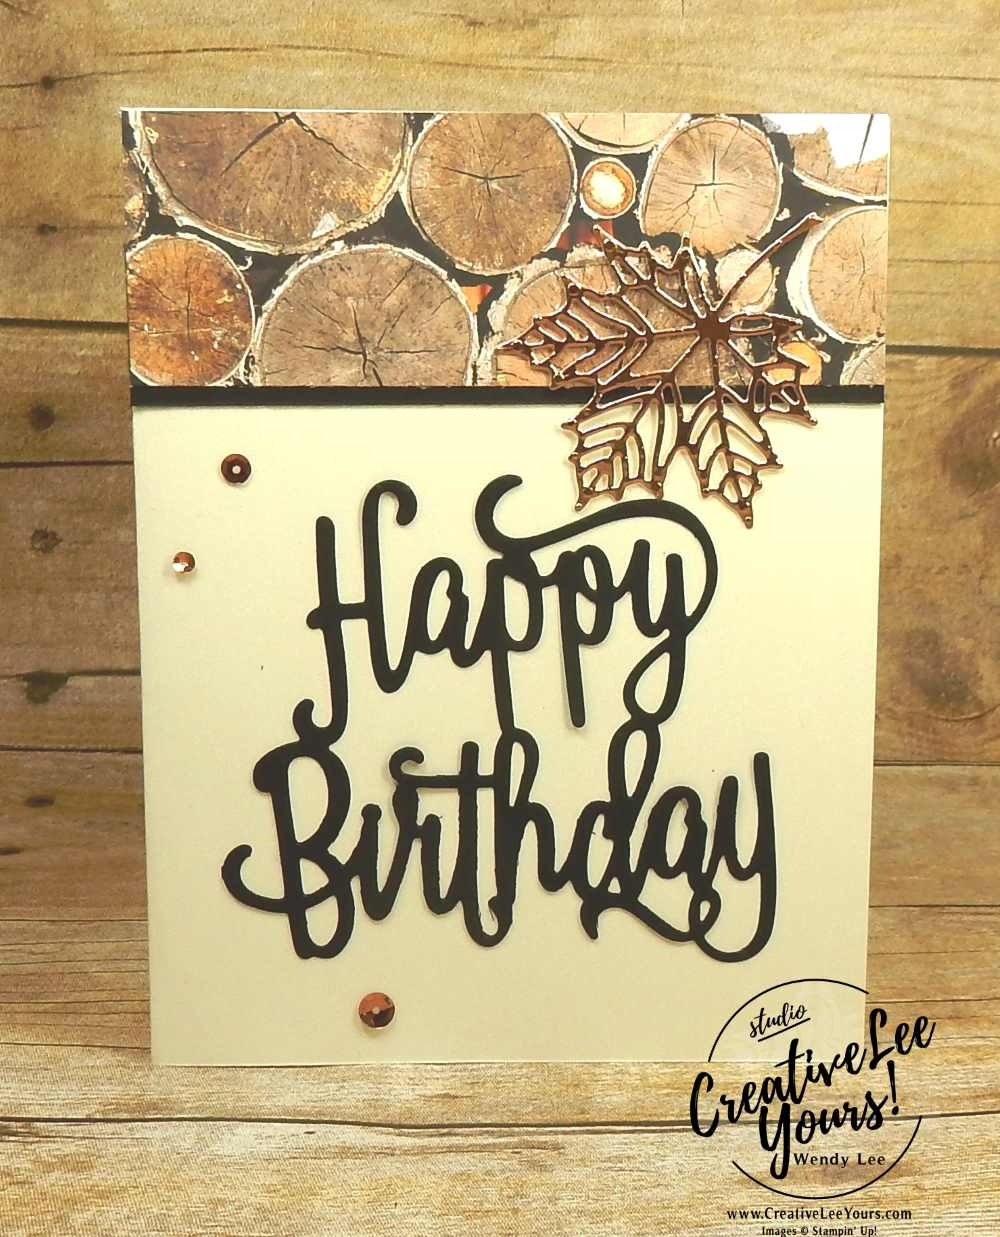 Wood Textures Birthday by wendy lee, stampin up, stamping, rubber stamps, handmade birthday card, wood textures designer series paper, colorful seasons stamp set, happy birthday thinlits, seasonal layers thinlits, masculine